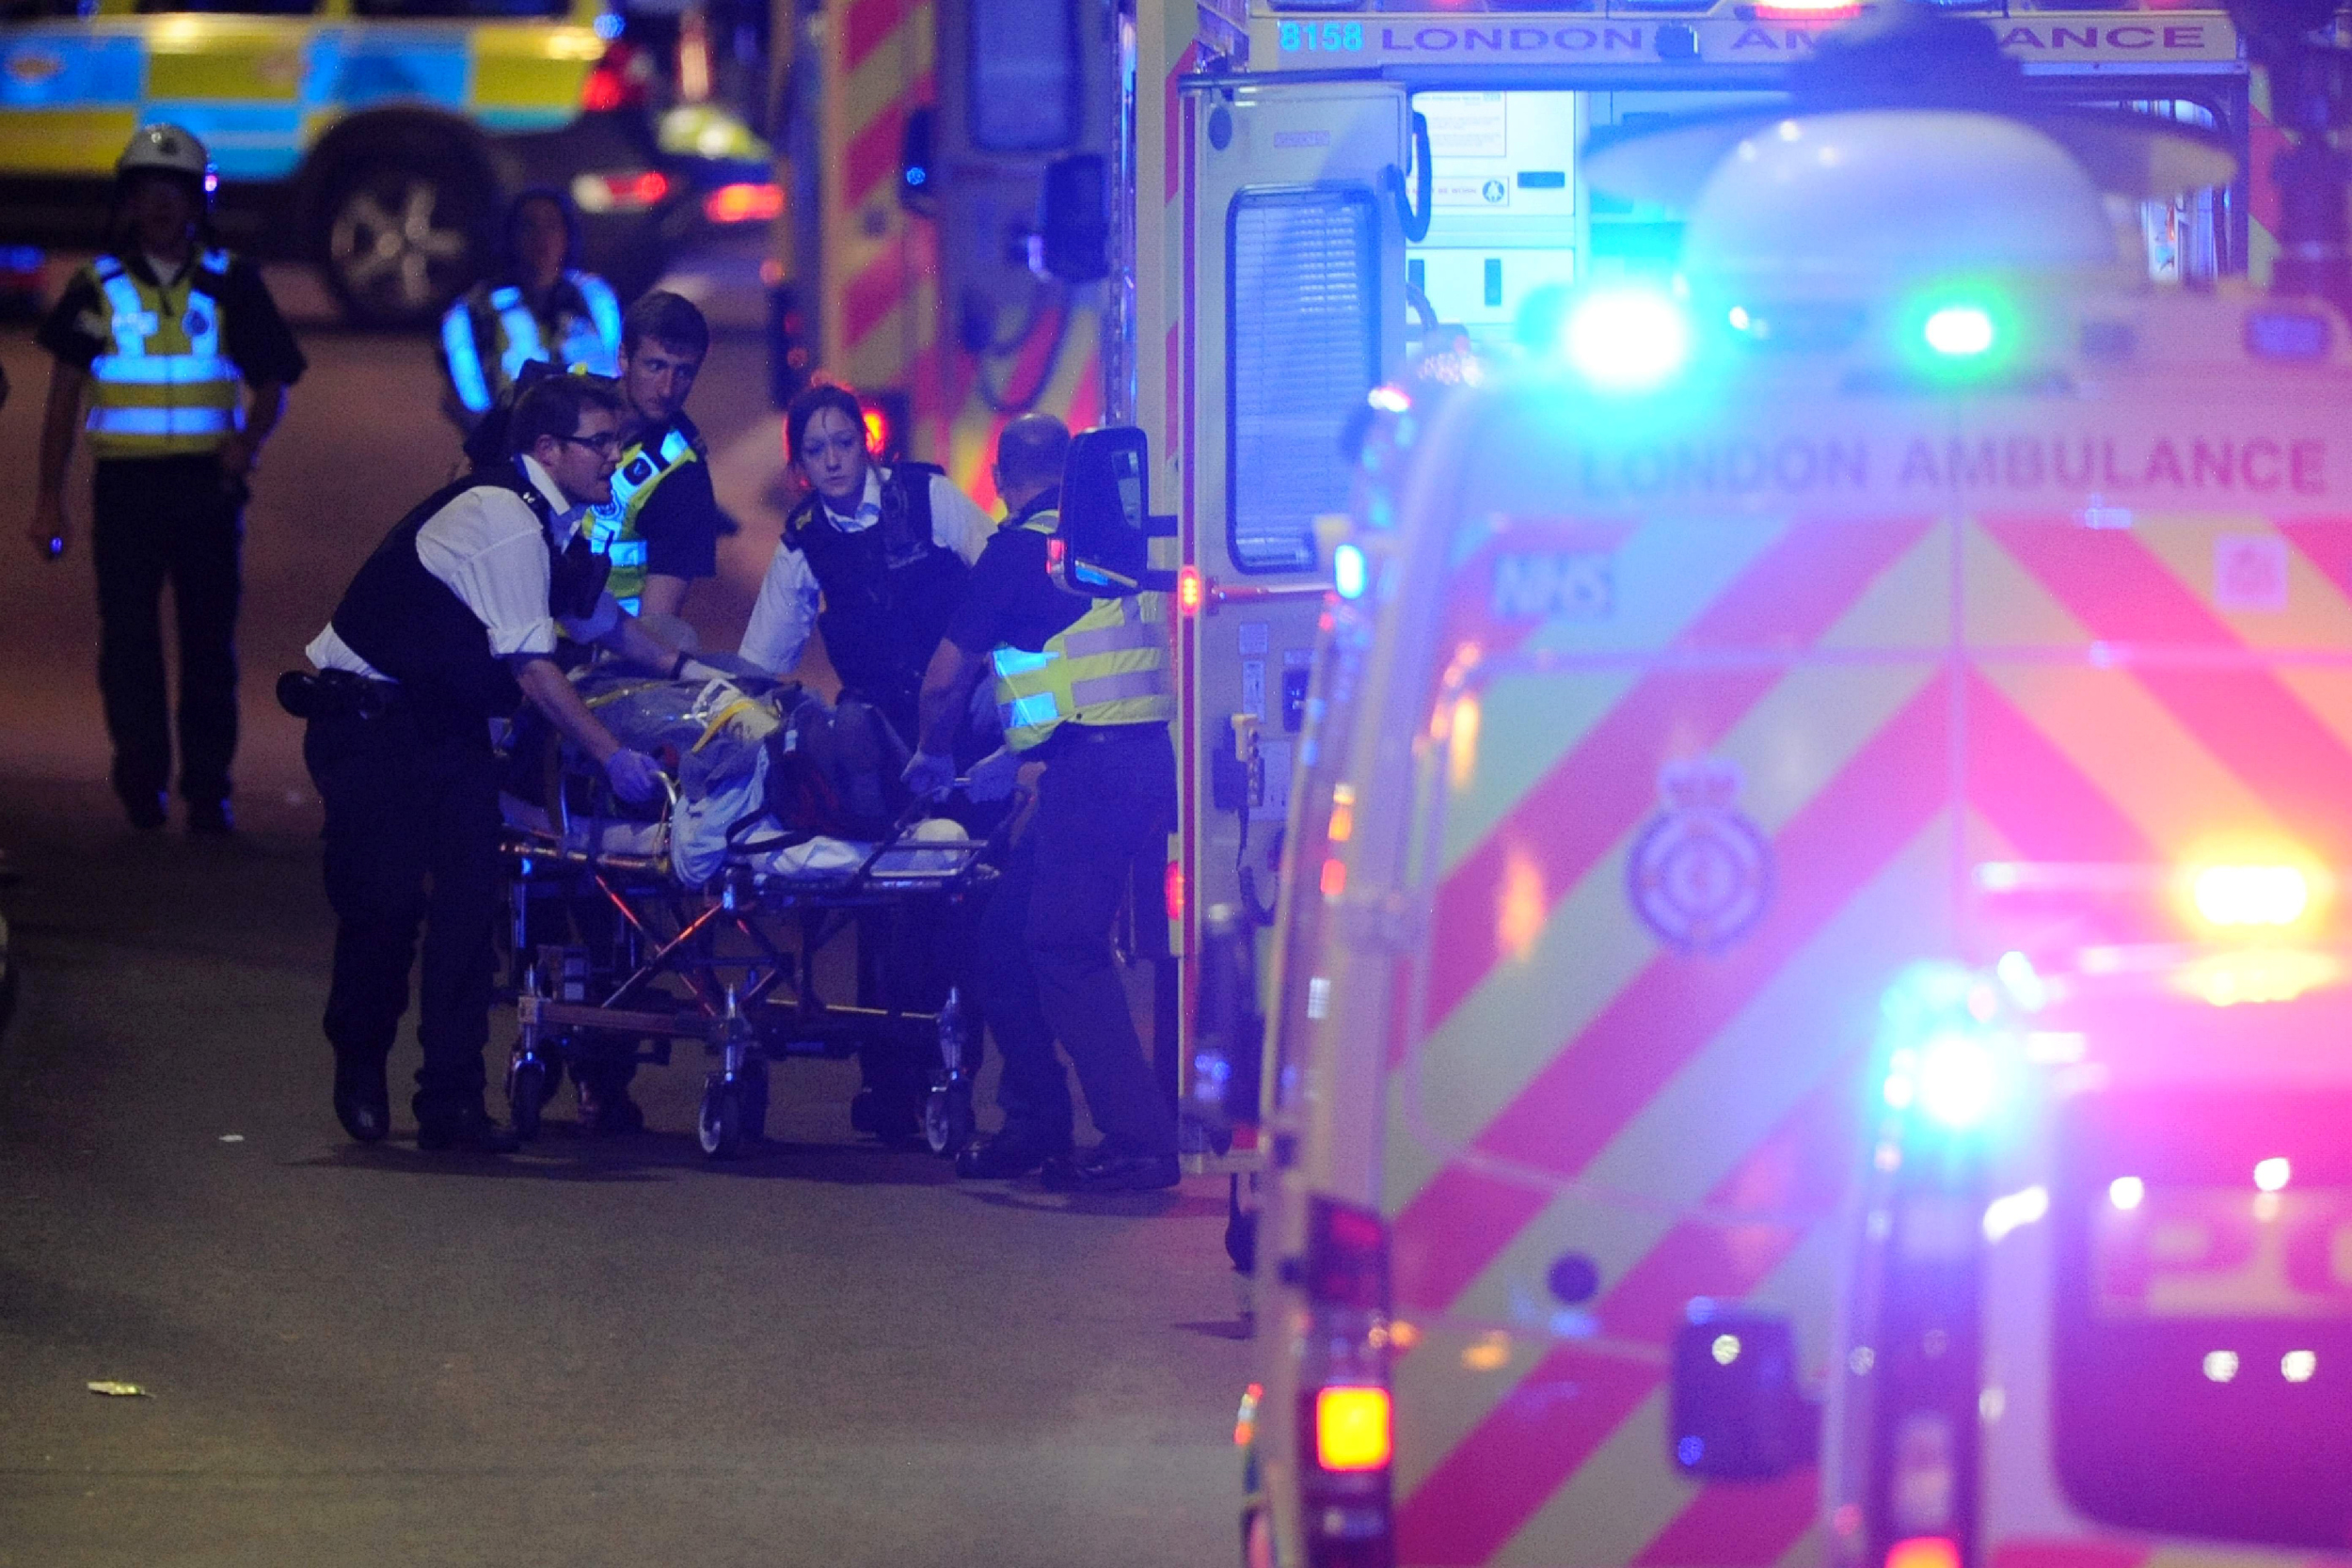 Image: Police officers and members of emergency services attend to a person injured in an apparent terror attack on London Bridge in central London on June 3, 2017.